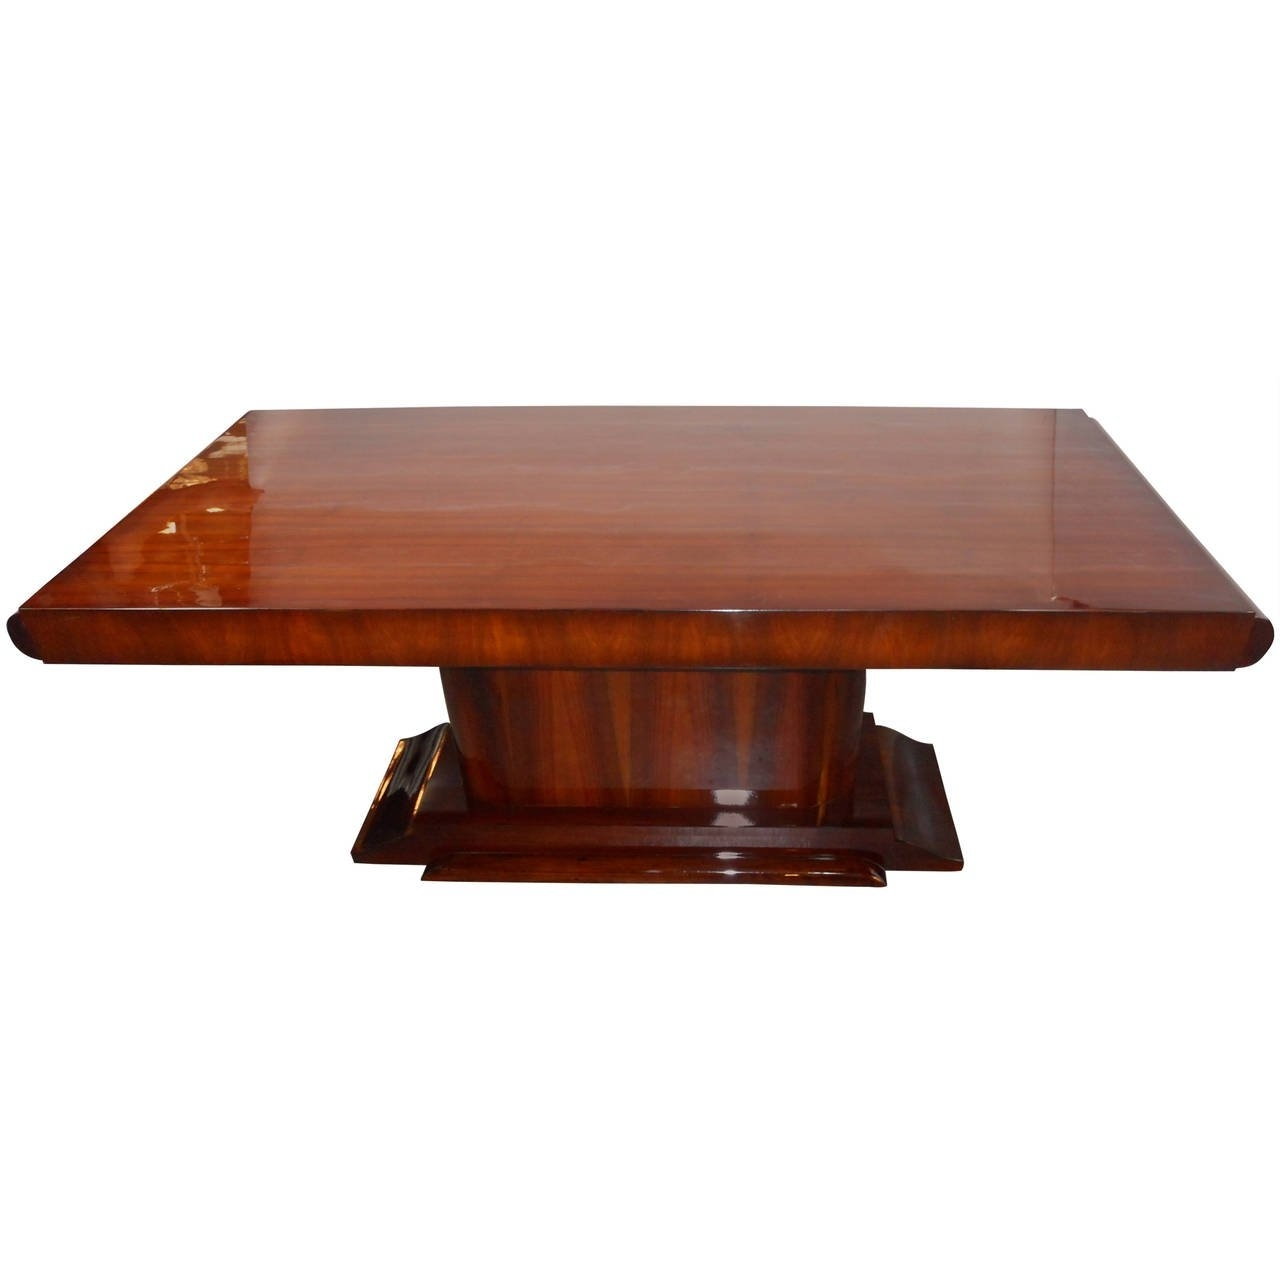 Dining Tableleon Jallot, Circa 1920S For Sale At 1Stdibs In Most Current Leon Dining Tables (View 18 of 20)